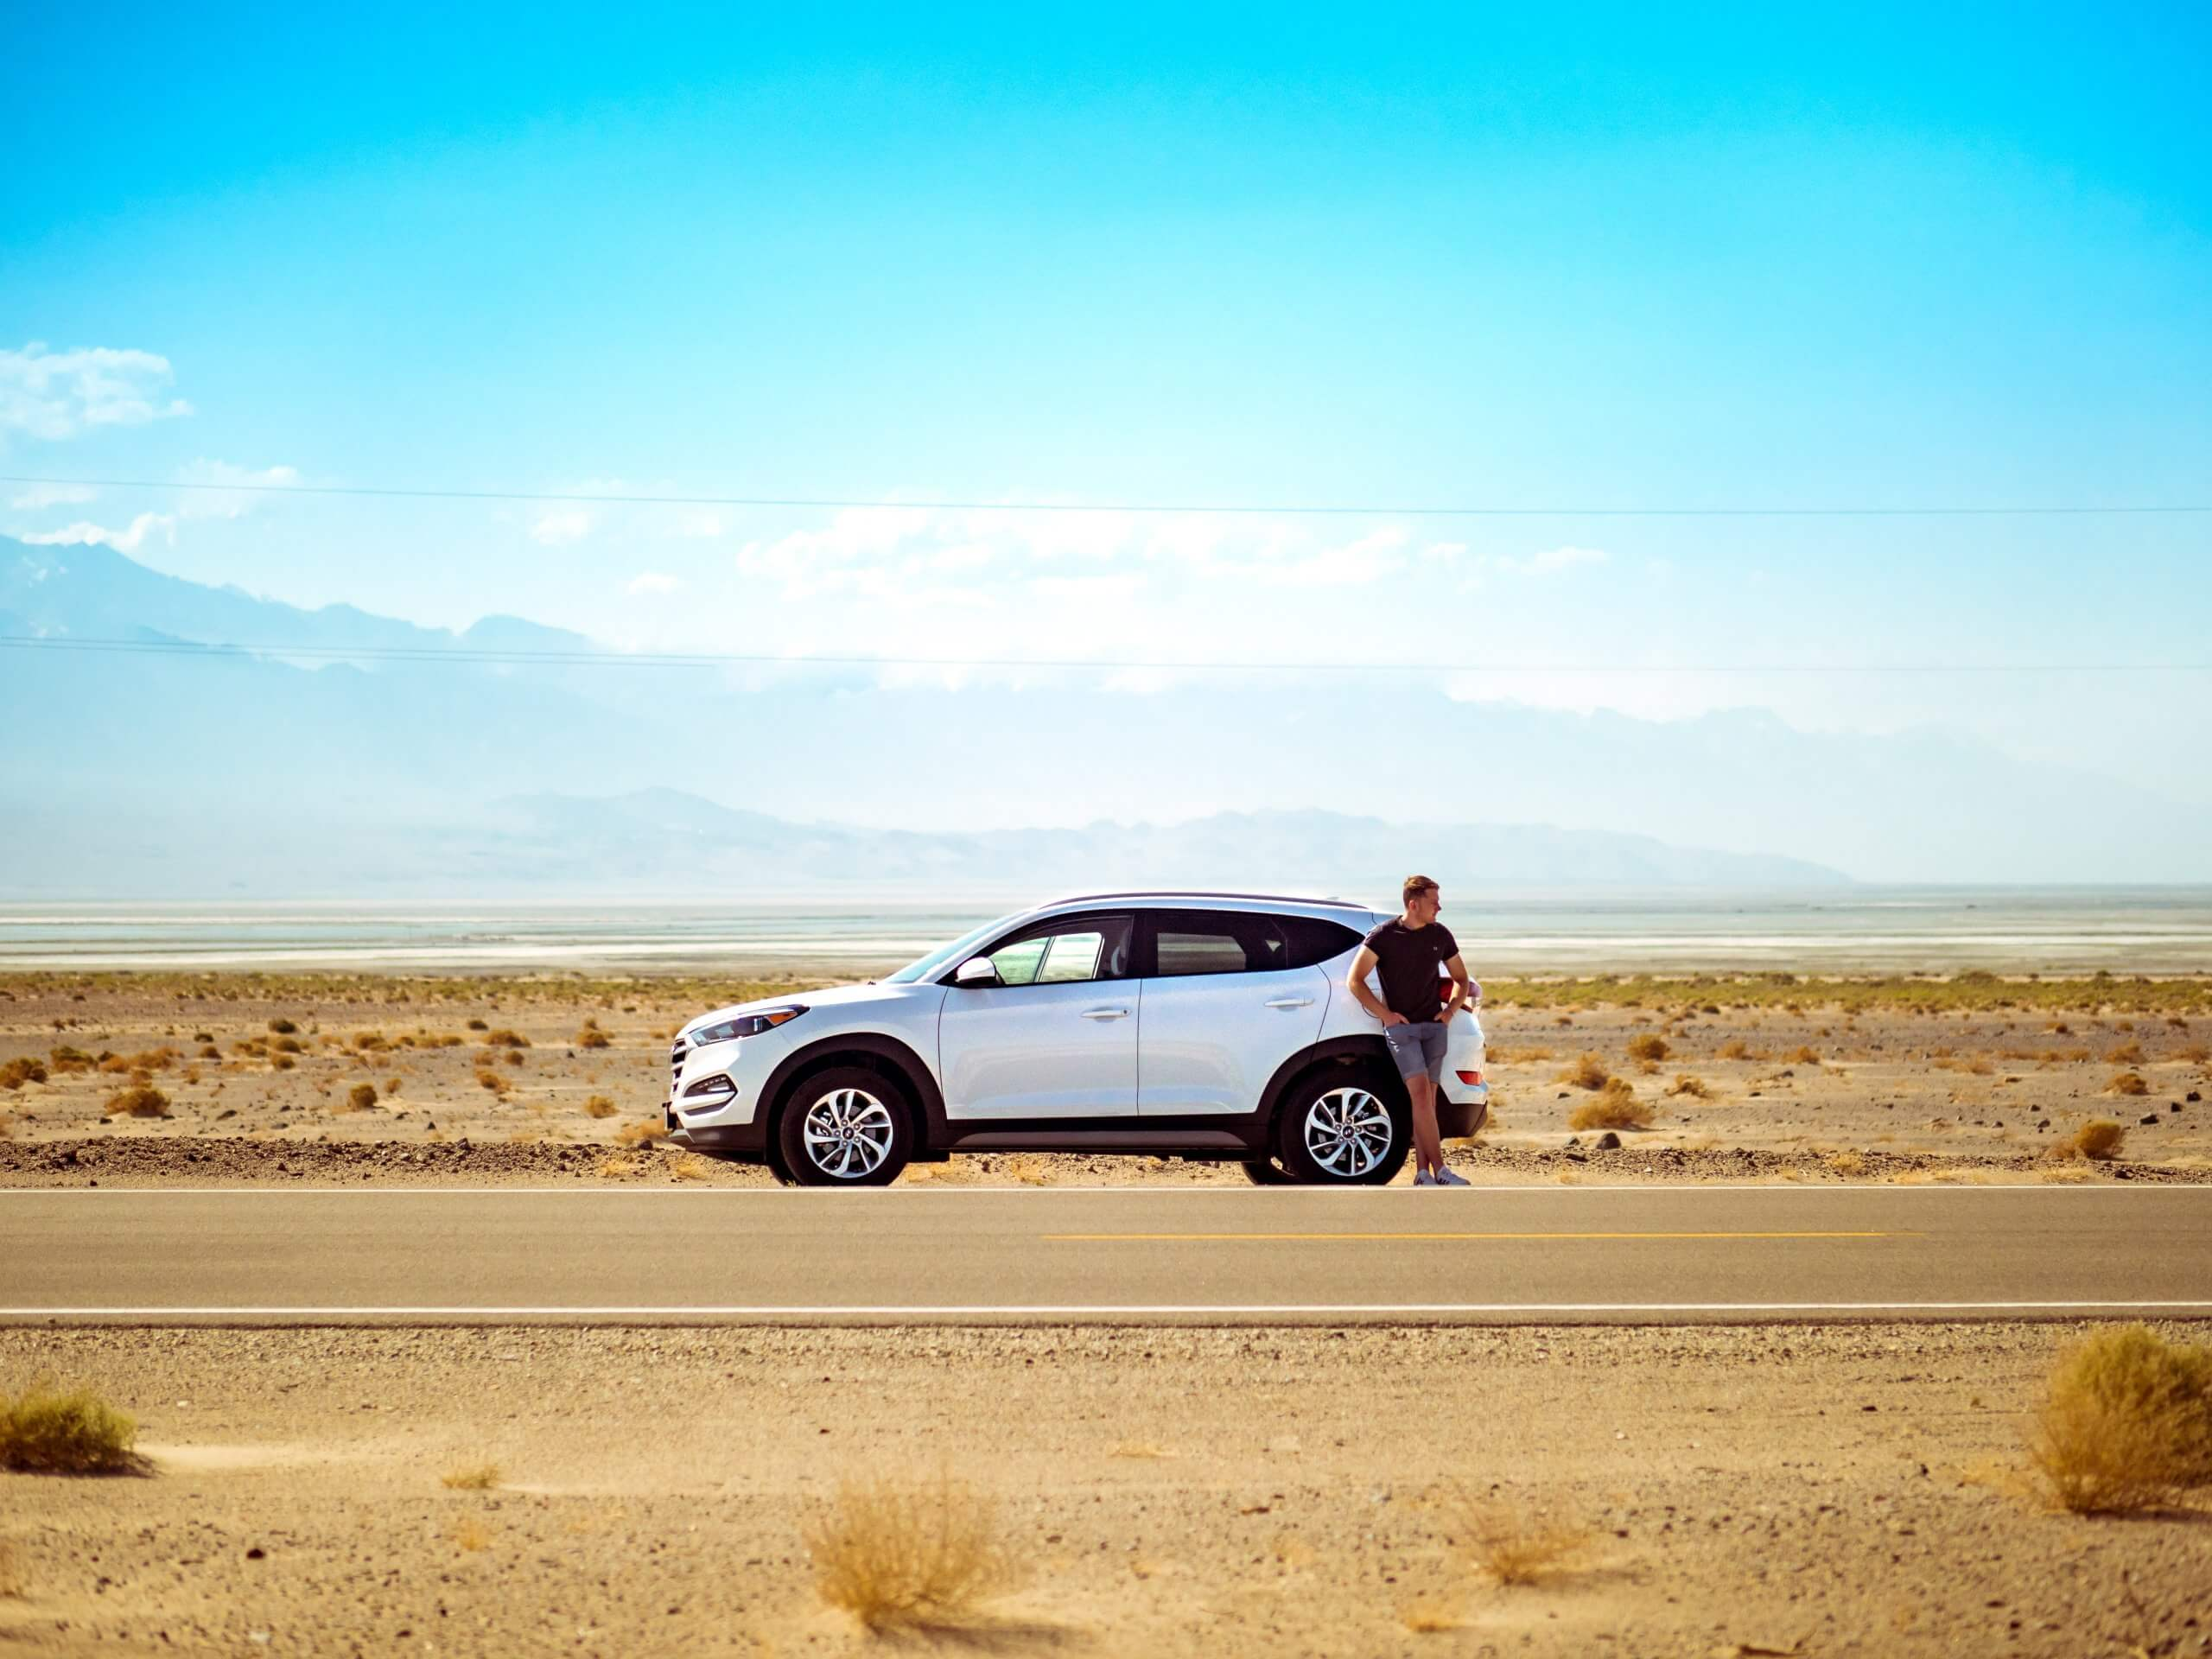 man stood by broken down car on desert road on beautiful day